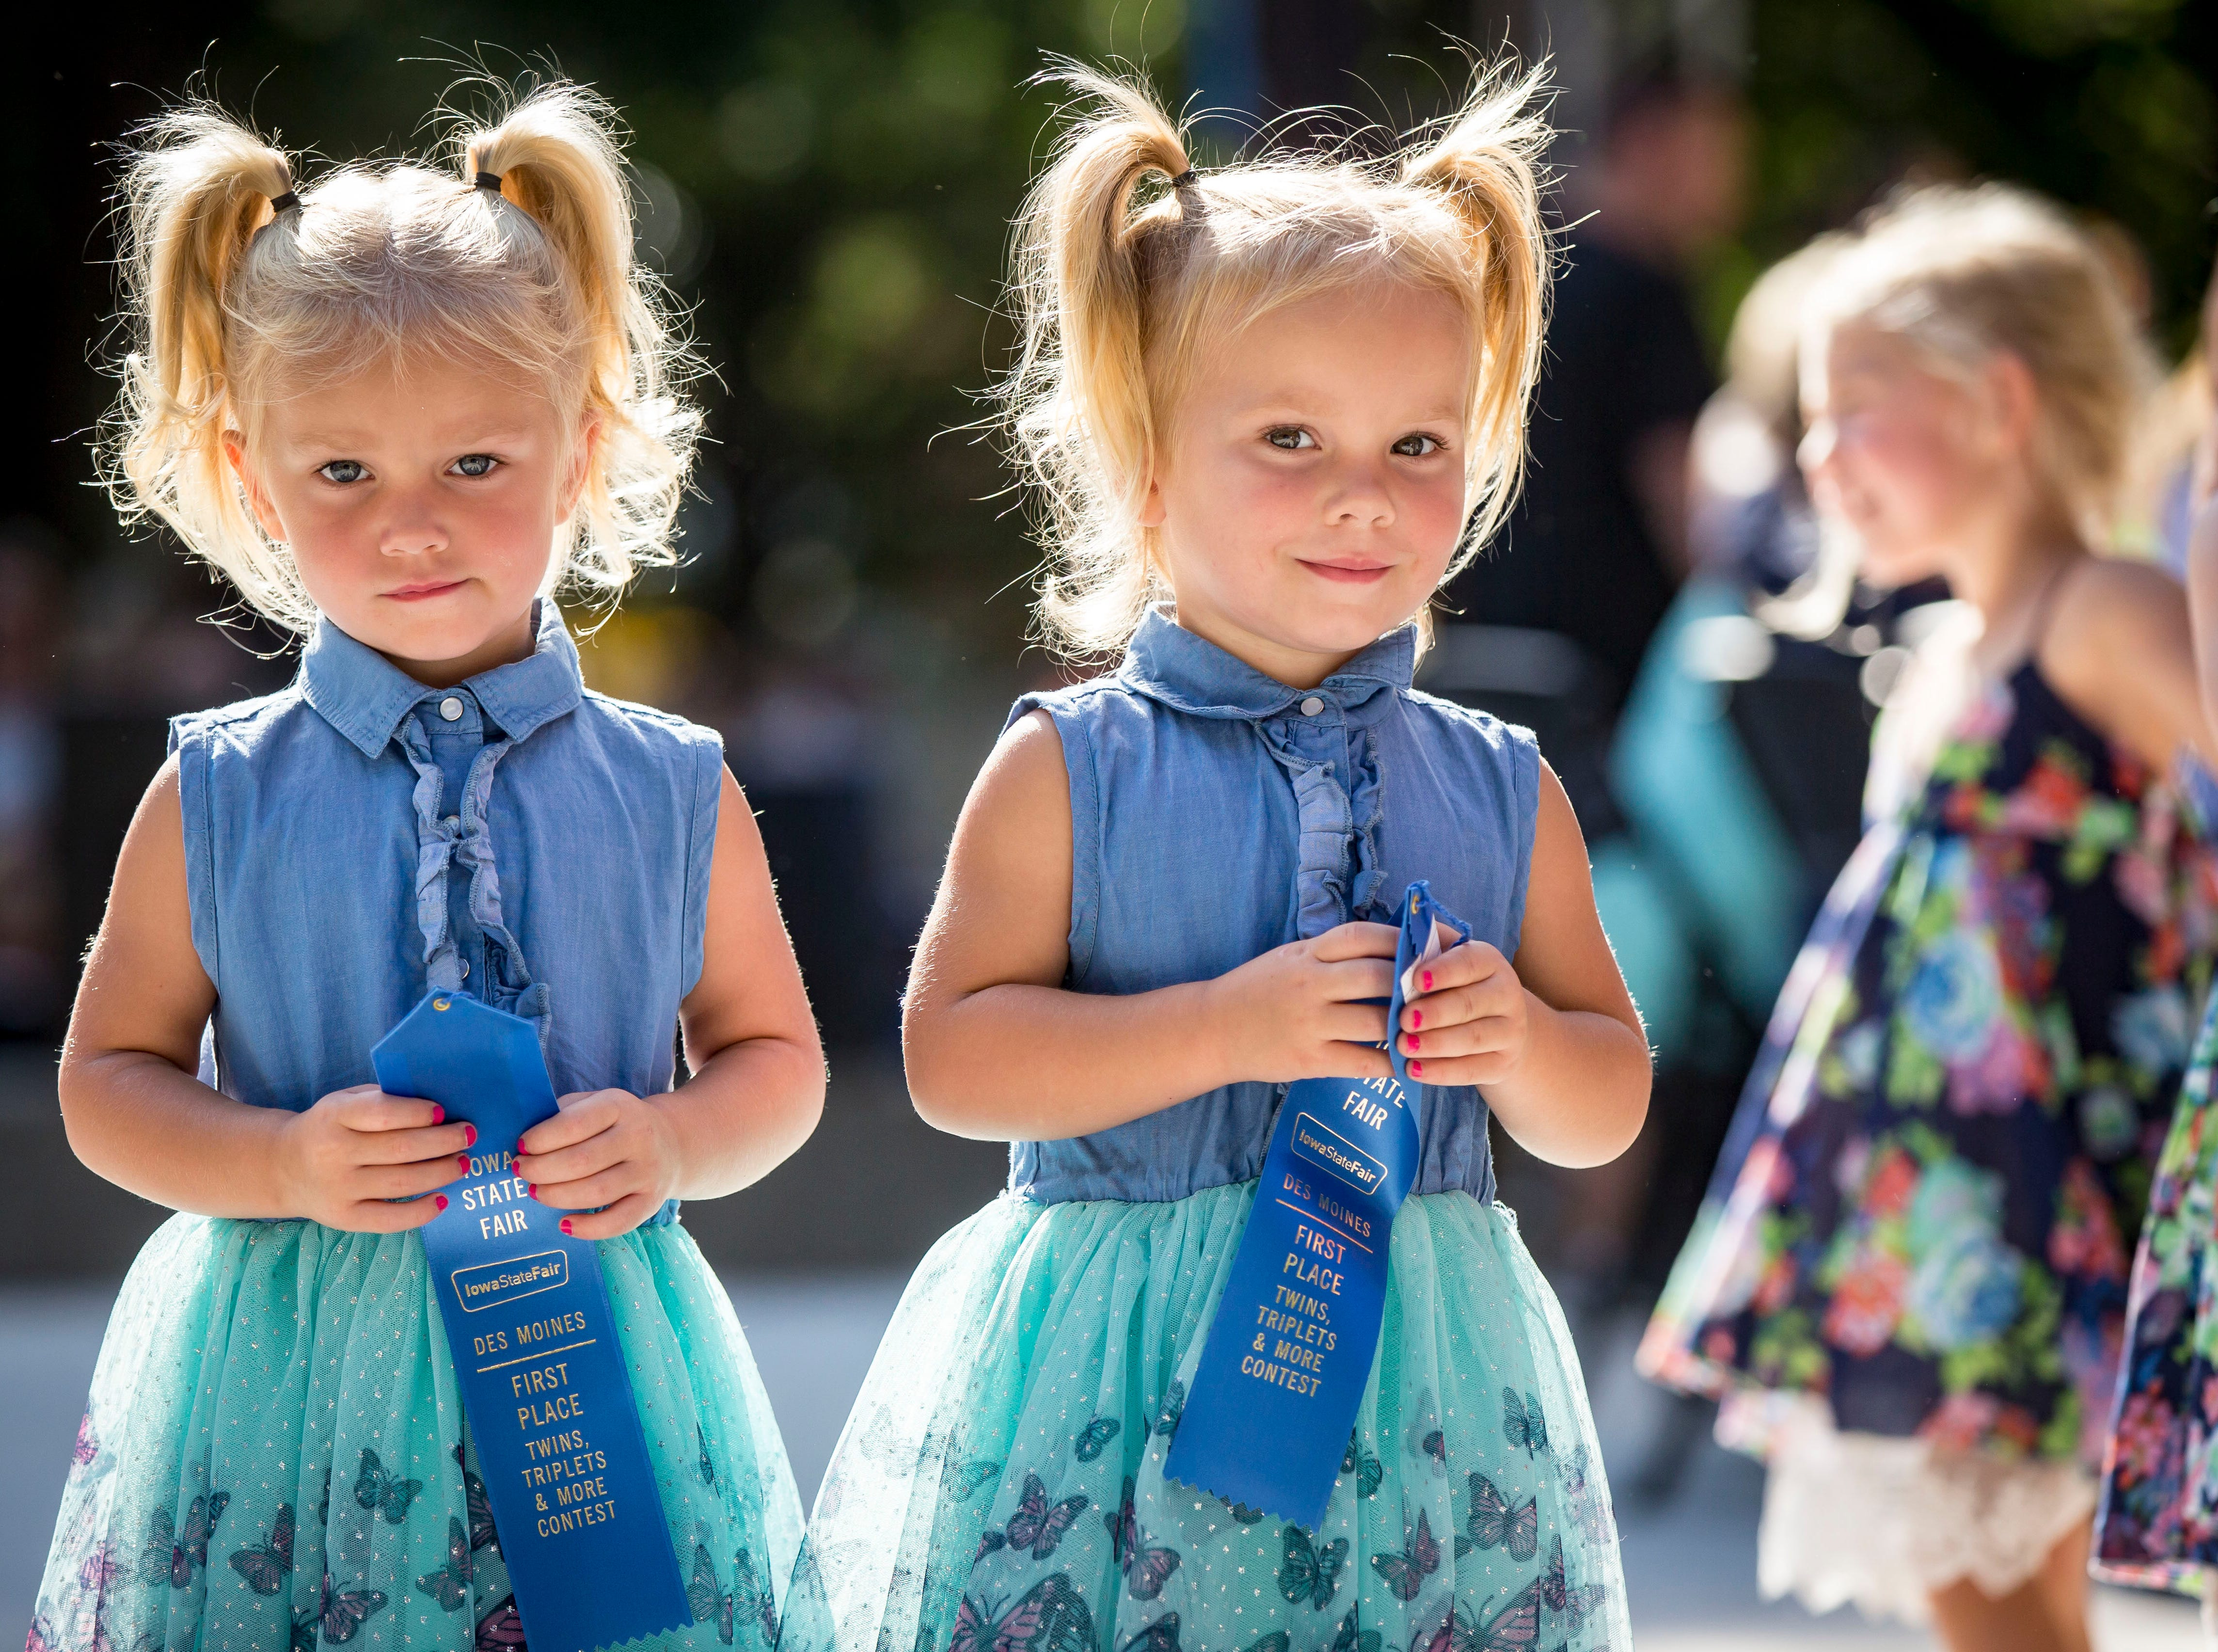 Three-year-old most alike blue ribbon winners Ellie, left, and Ava Goodrich of Ankeny during the Twins, Triplets and More Contest on the Anne and Bill Riley Stage at the 2018 Iowa State Fair in Des Moines Thursday, Aug. 9, 2018.